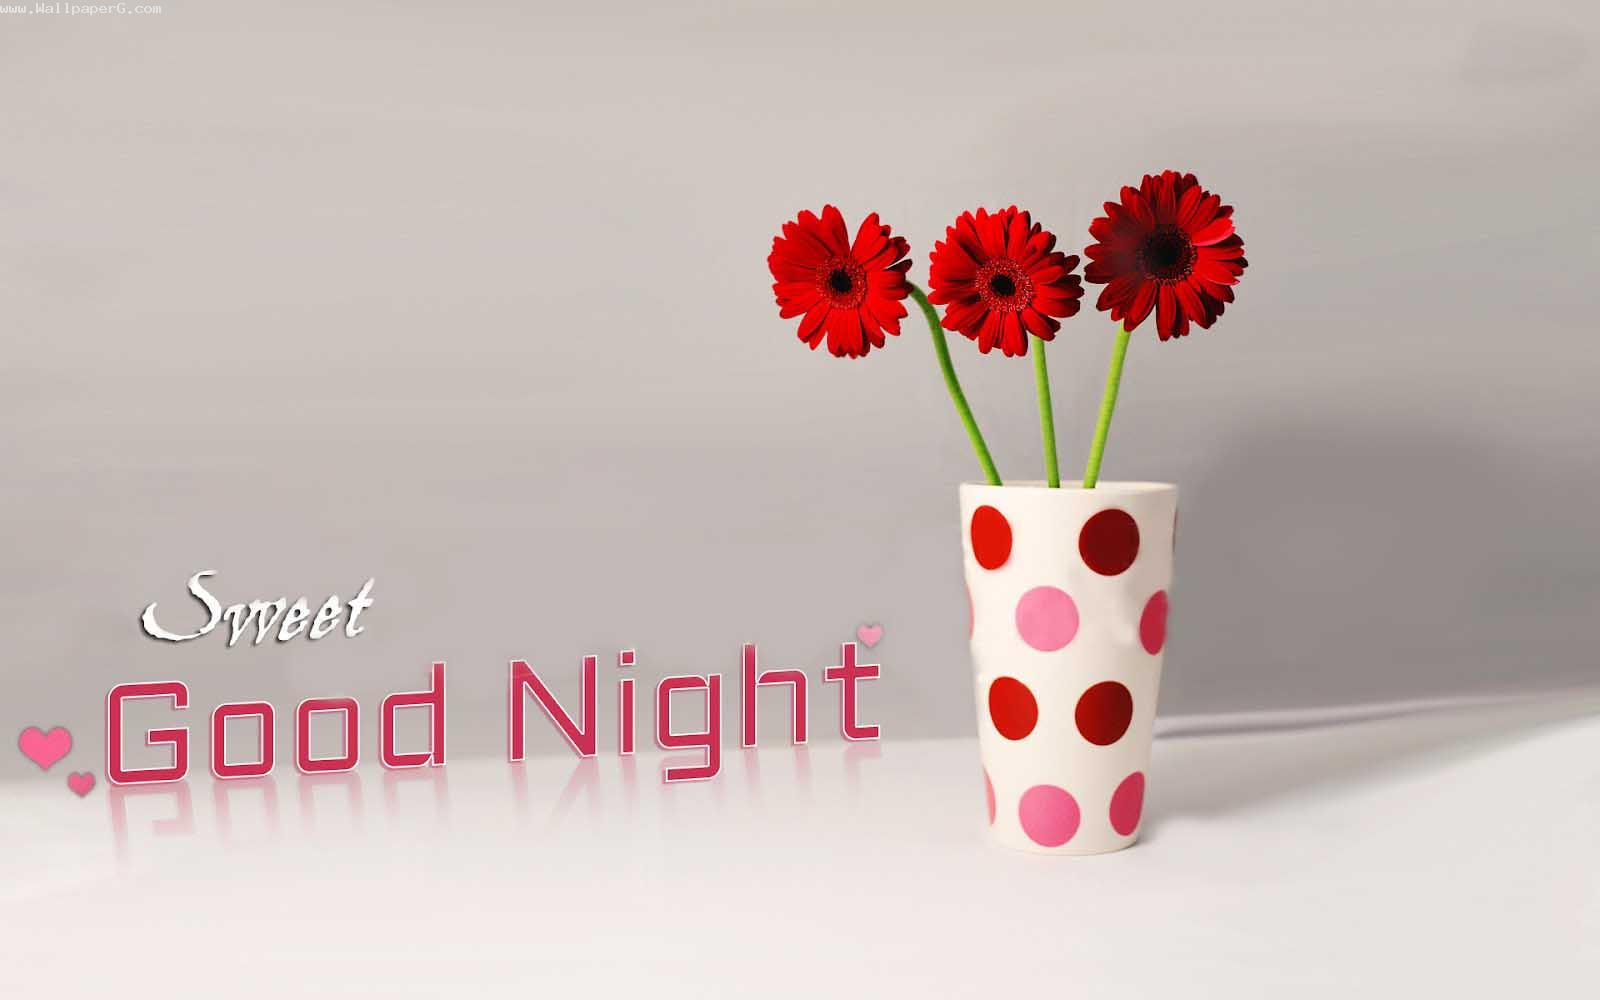 Sweet good night wallpaper ,wide,wallpapers,images,pictute,photos